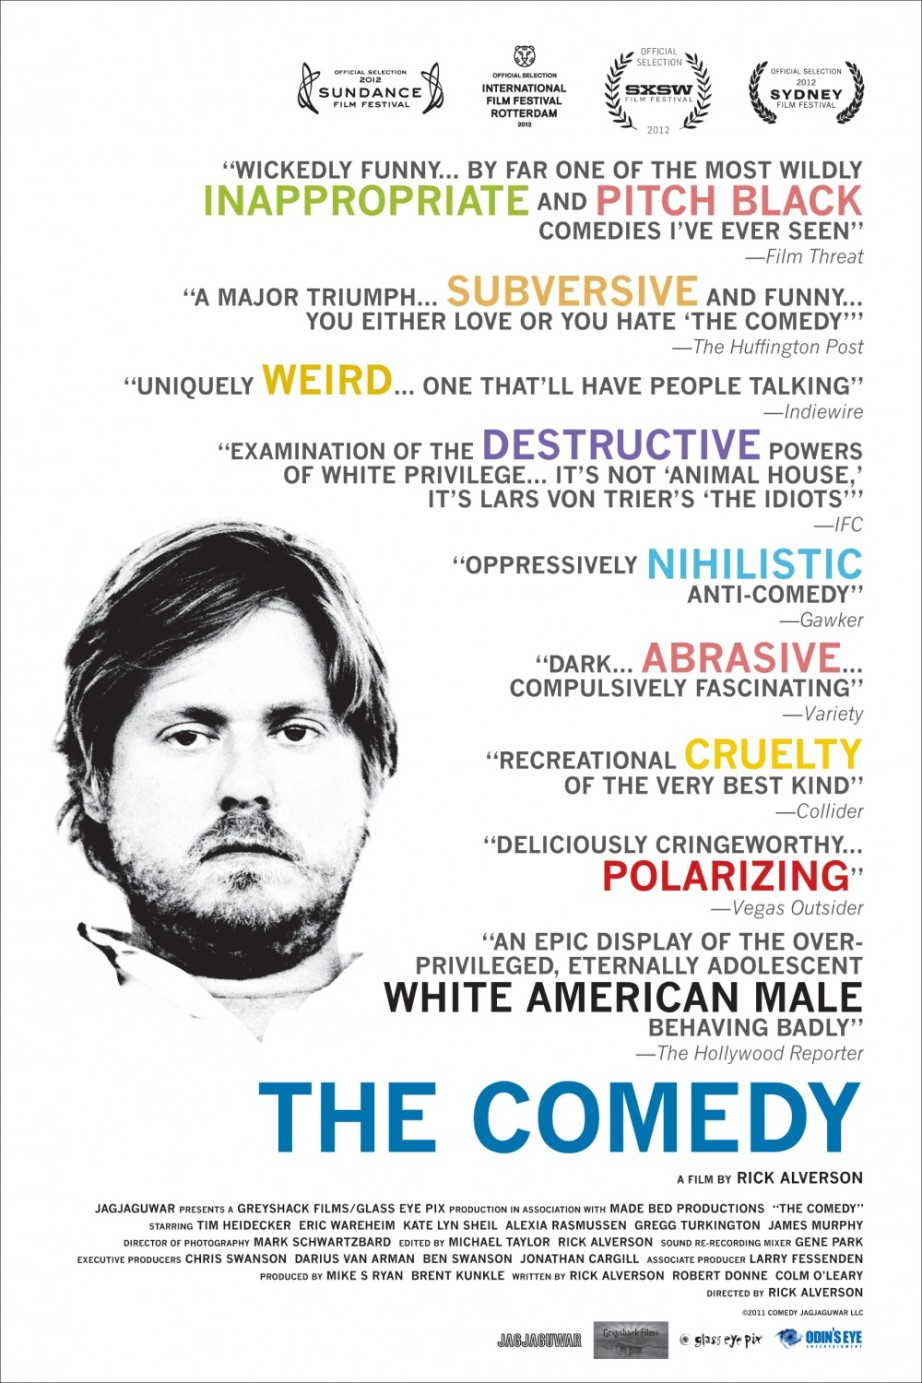 """Oh, wow. So good, so funny! You're so funny!"" The Comedy Rick Alverson, 2012"